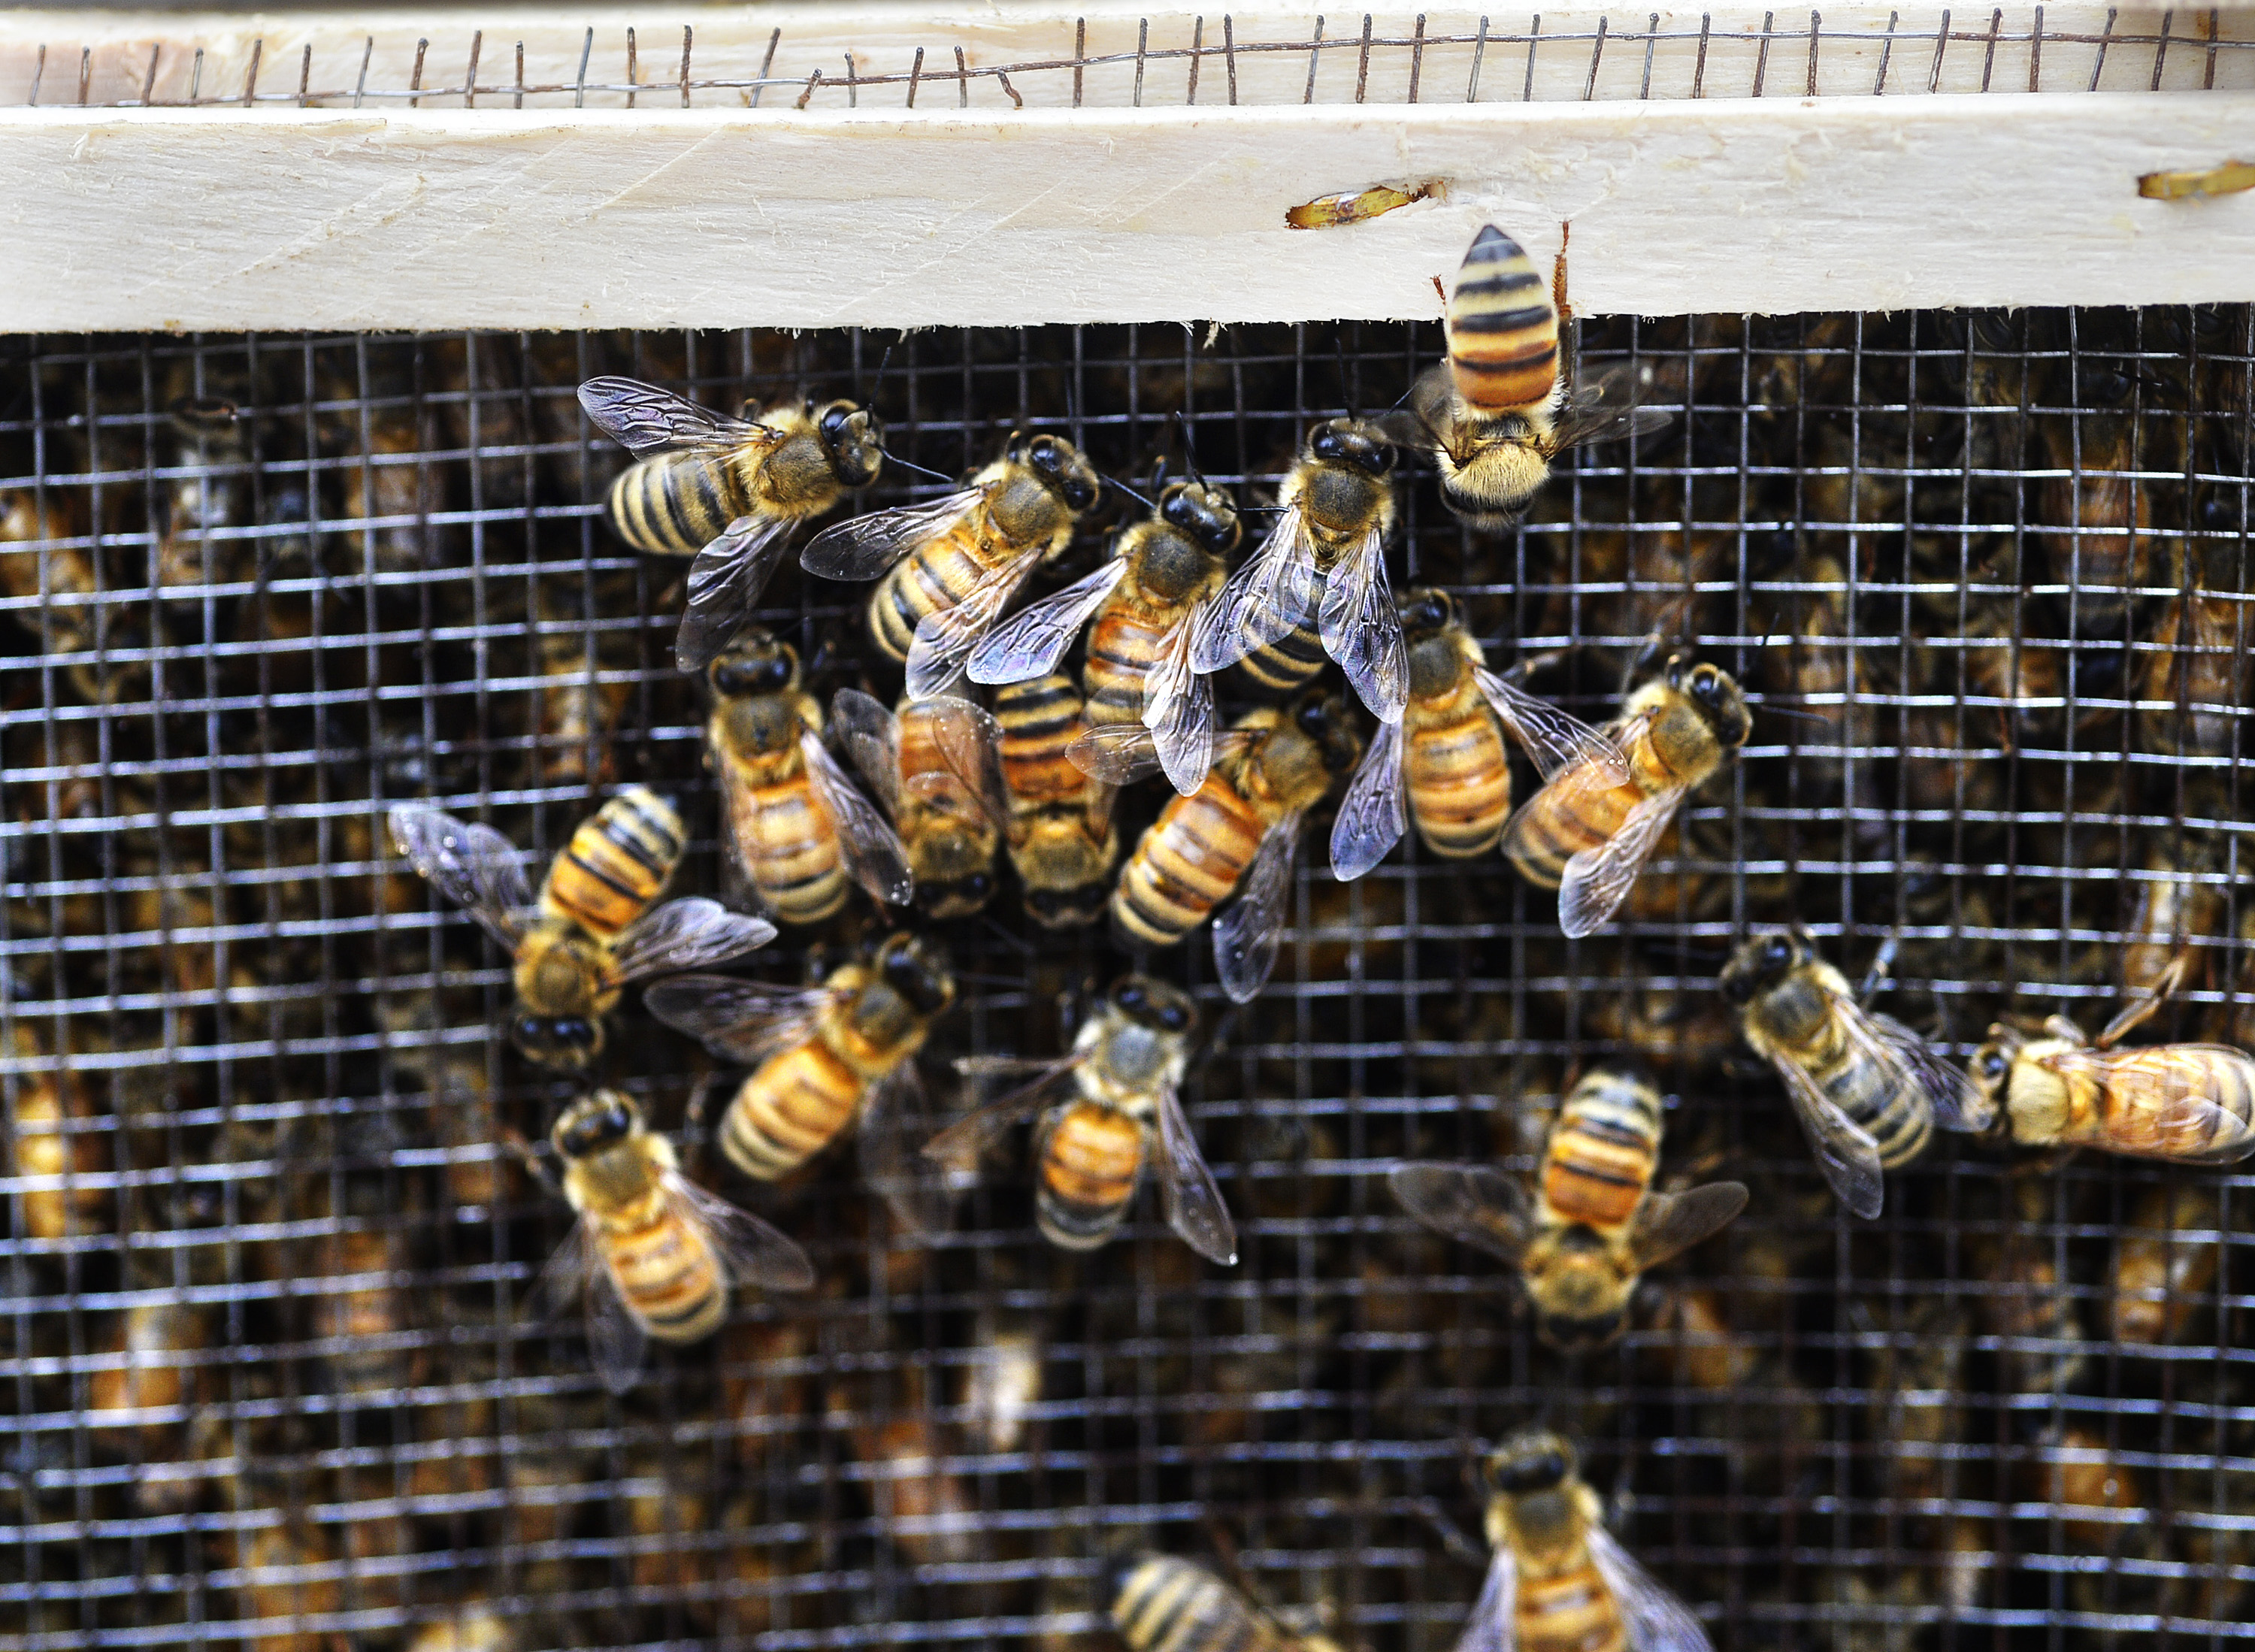 Bees at the Route 1 visitors center in Yarmouth on April 28, 2017.